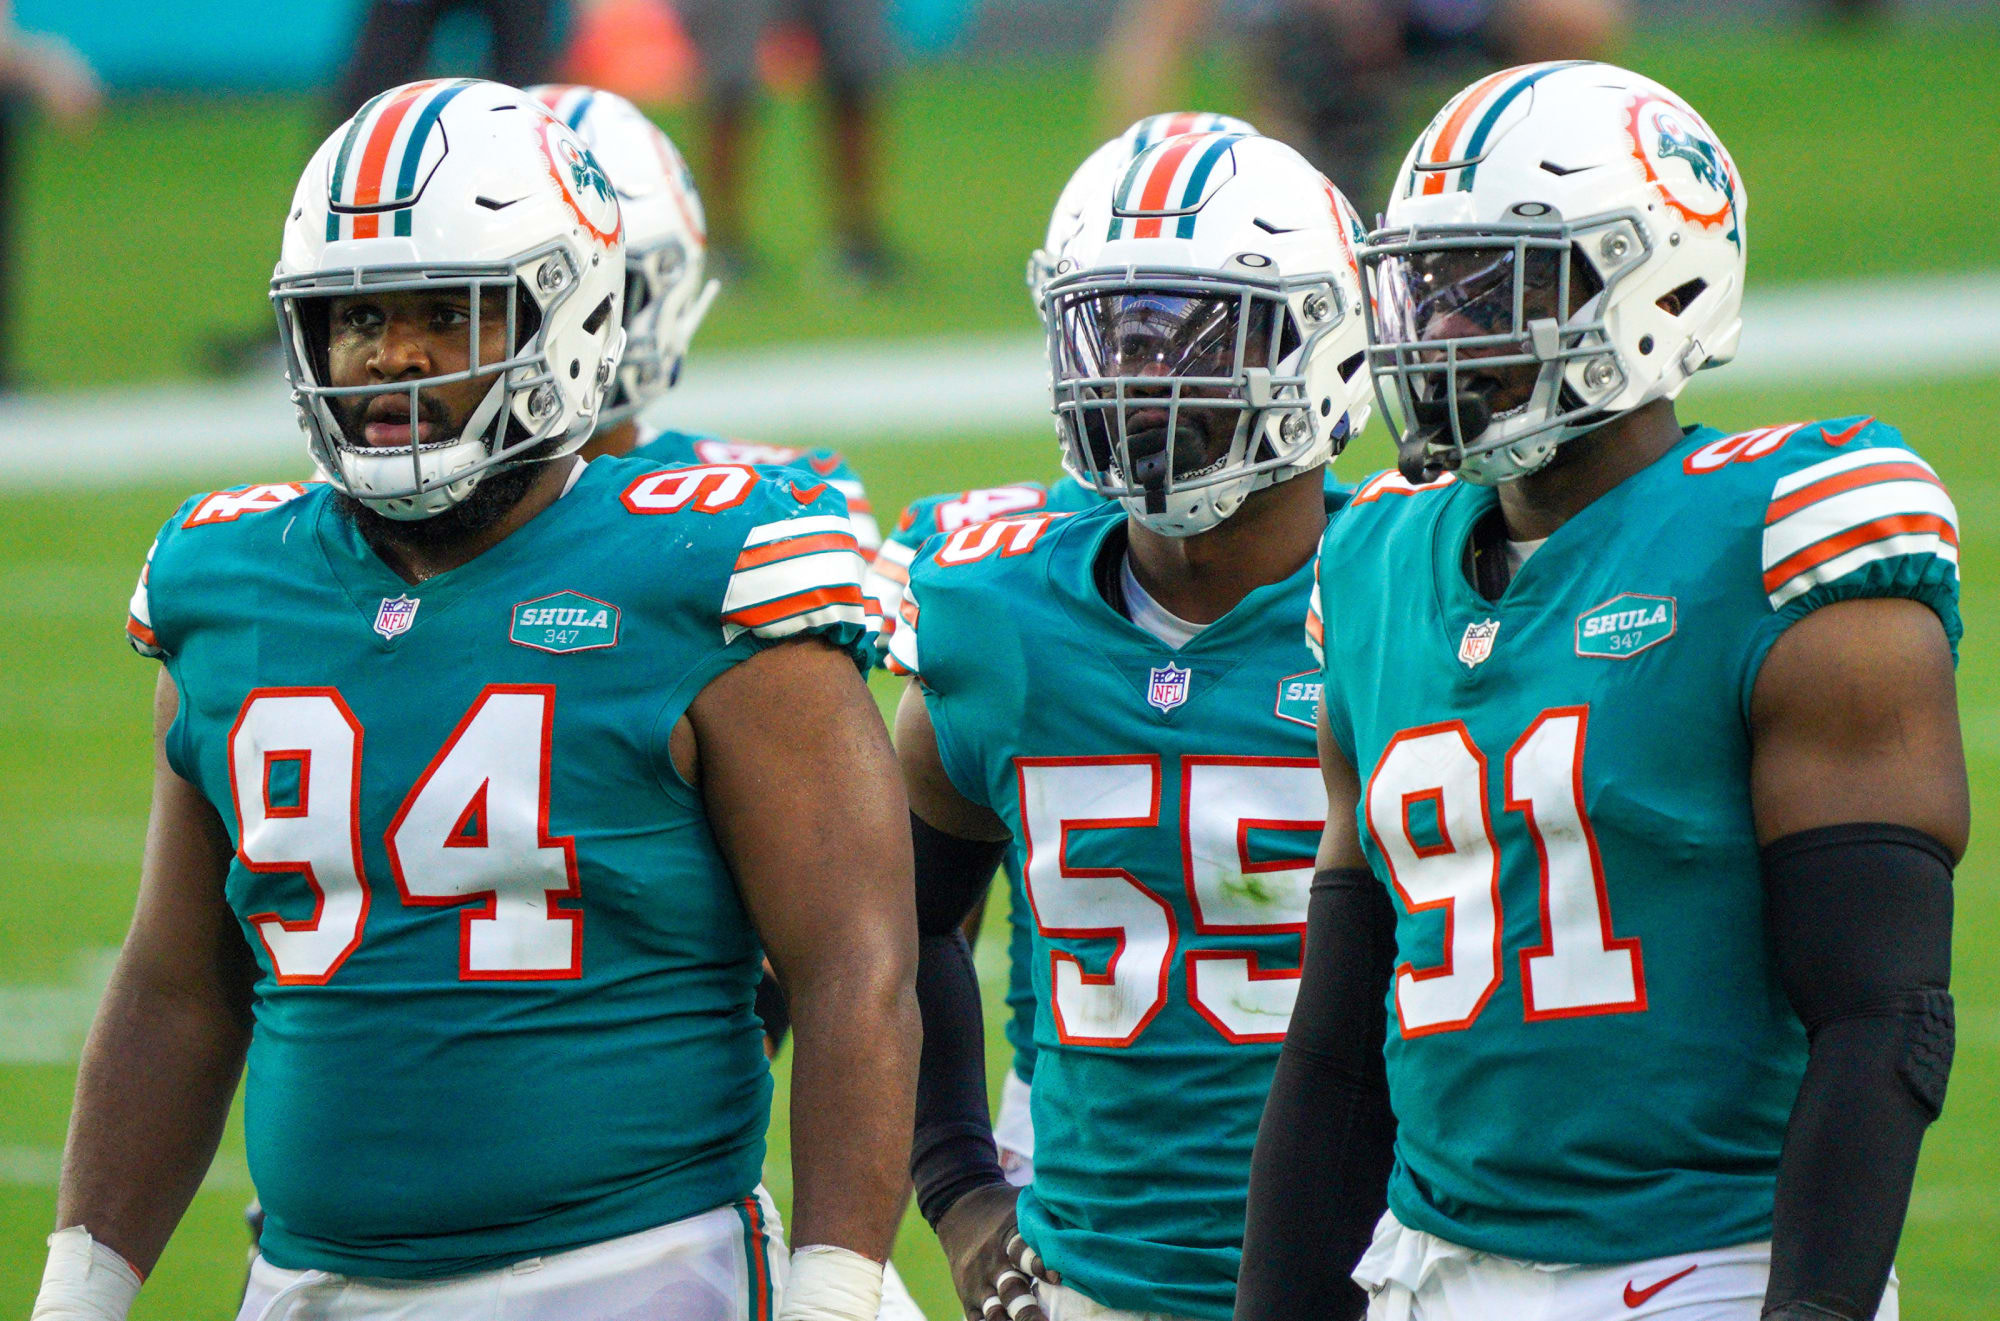 Dolphins could make history in both playoffs and NFL Draft